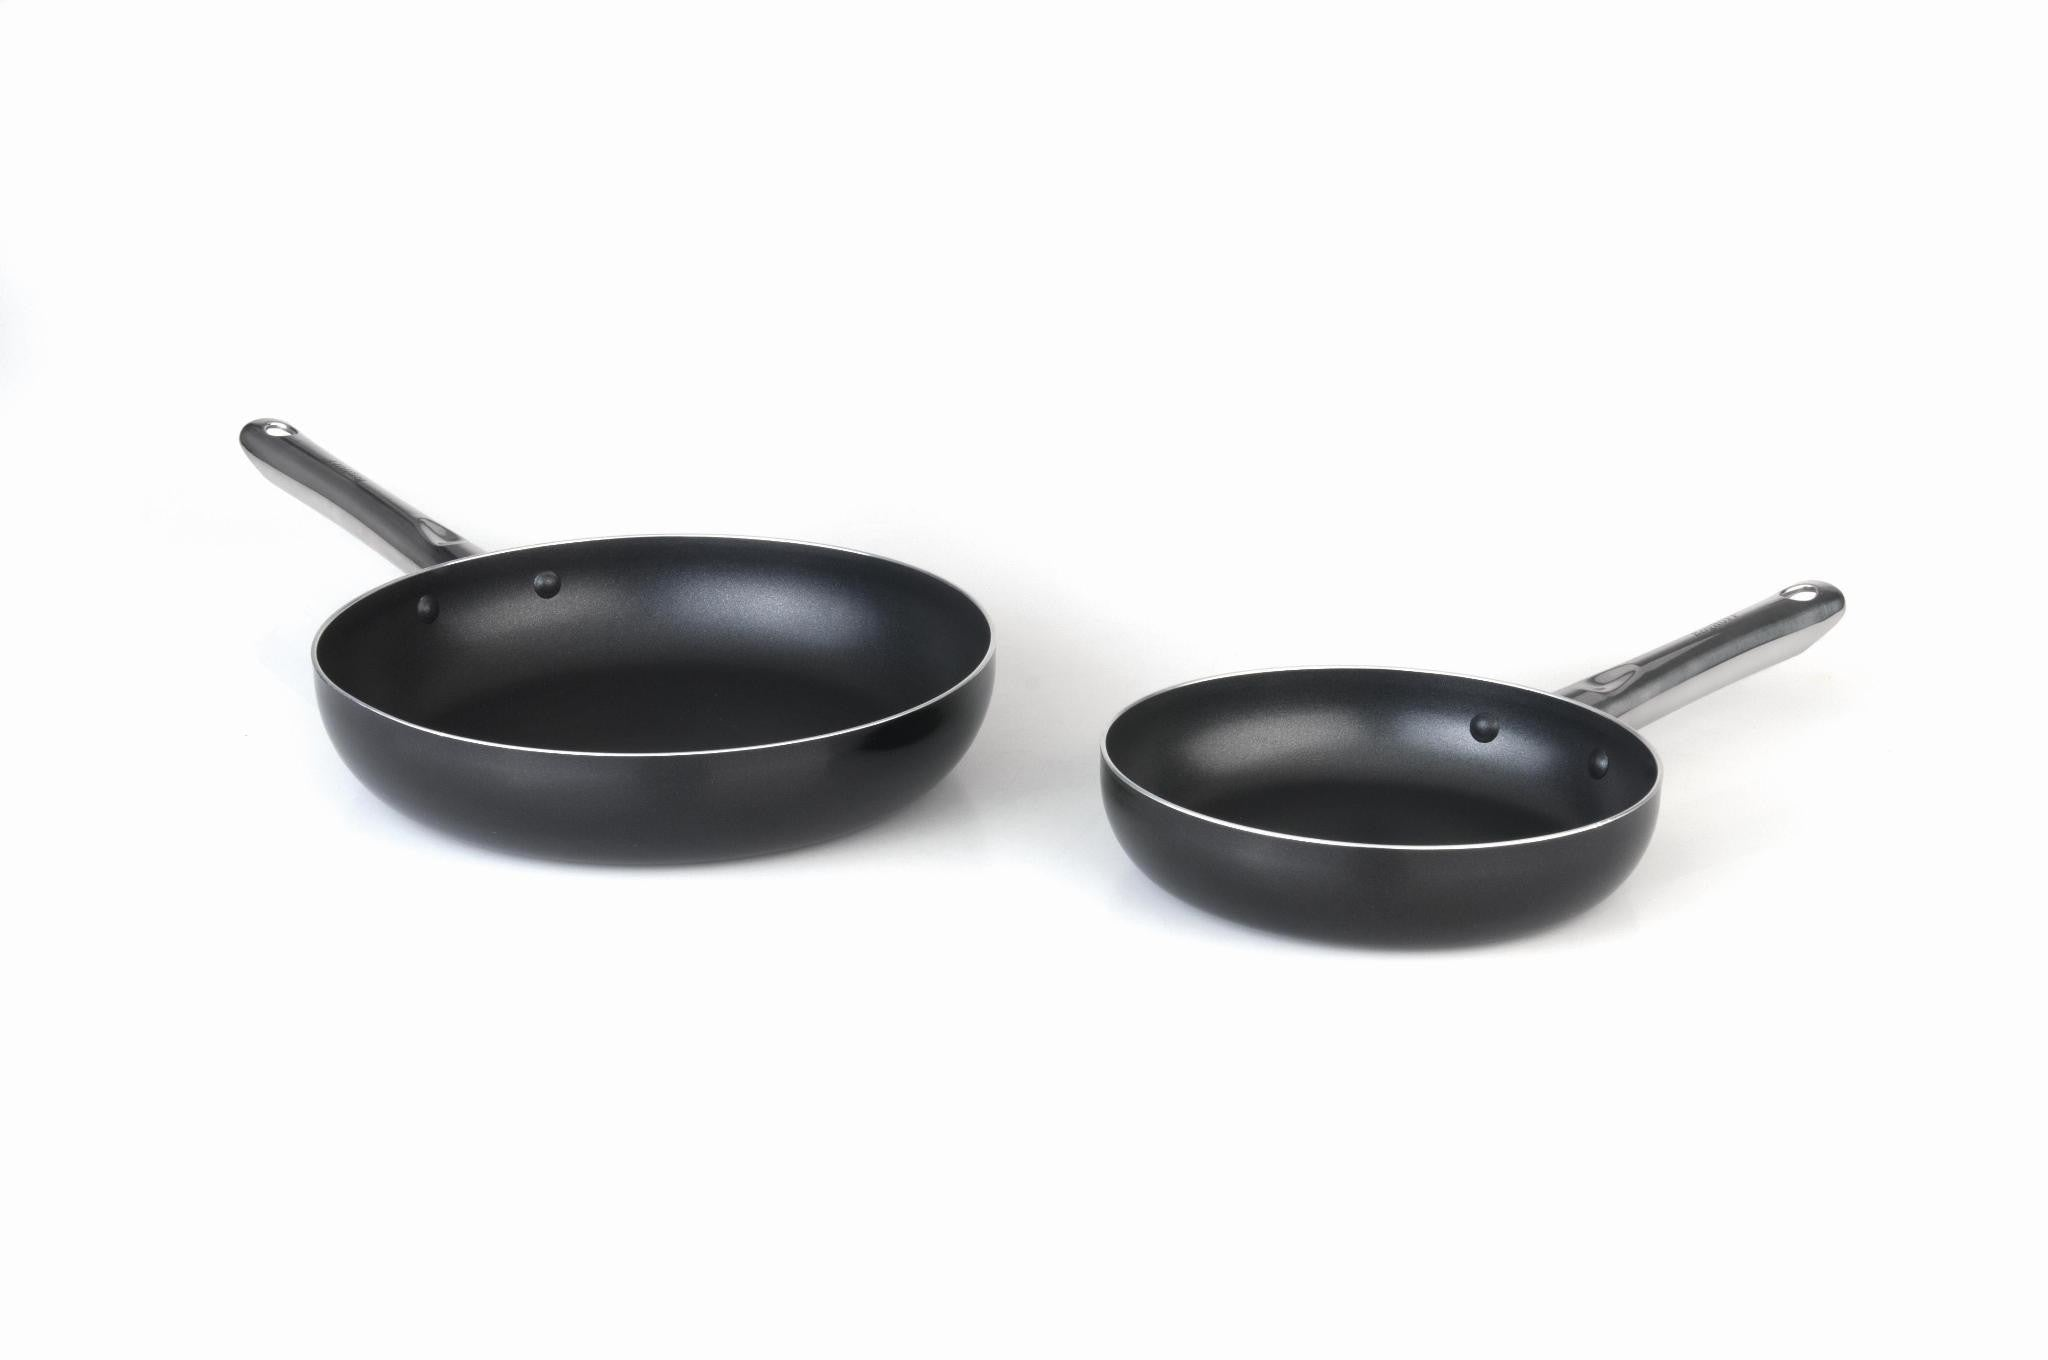 Earthchef Boreal Non-Stick 2 Piece Aluminium Frying Pans